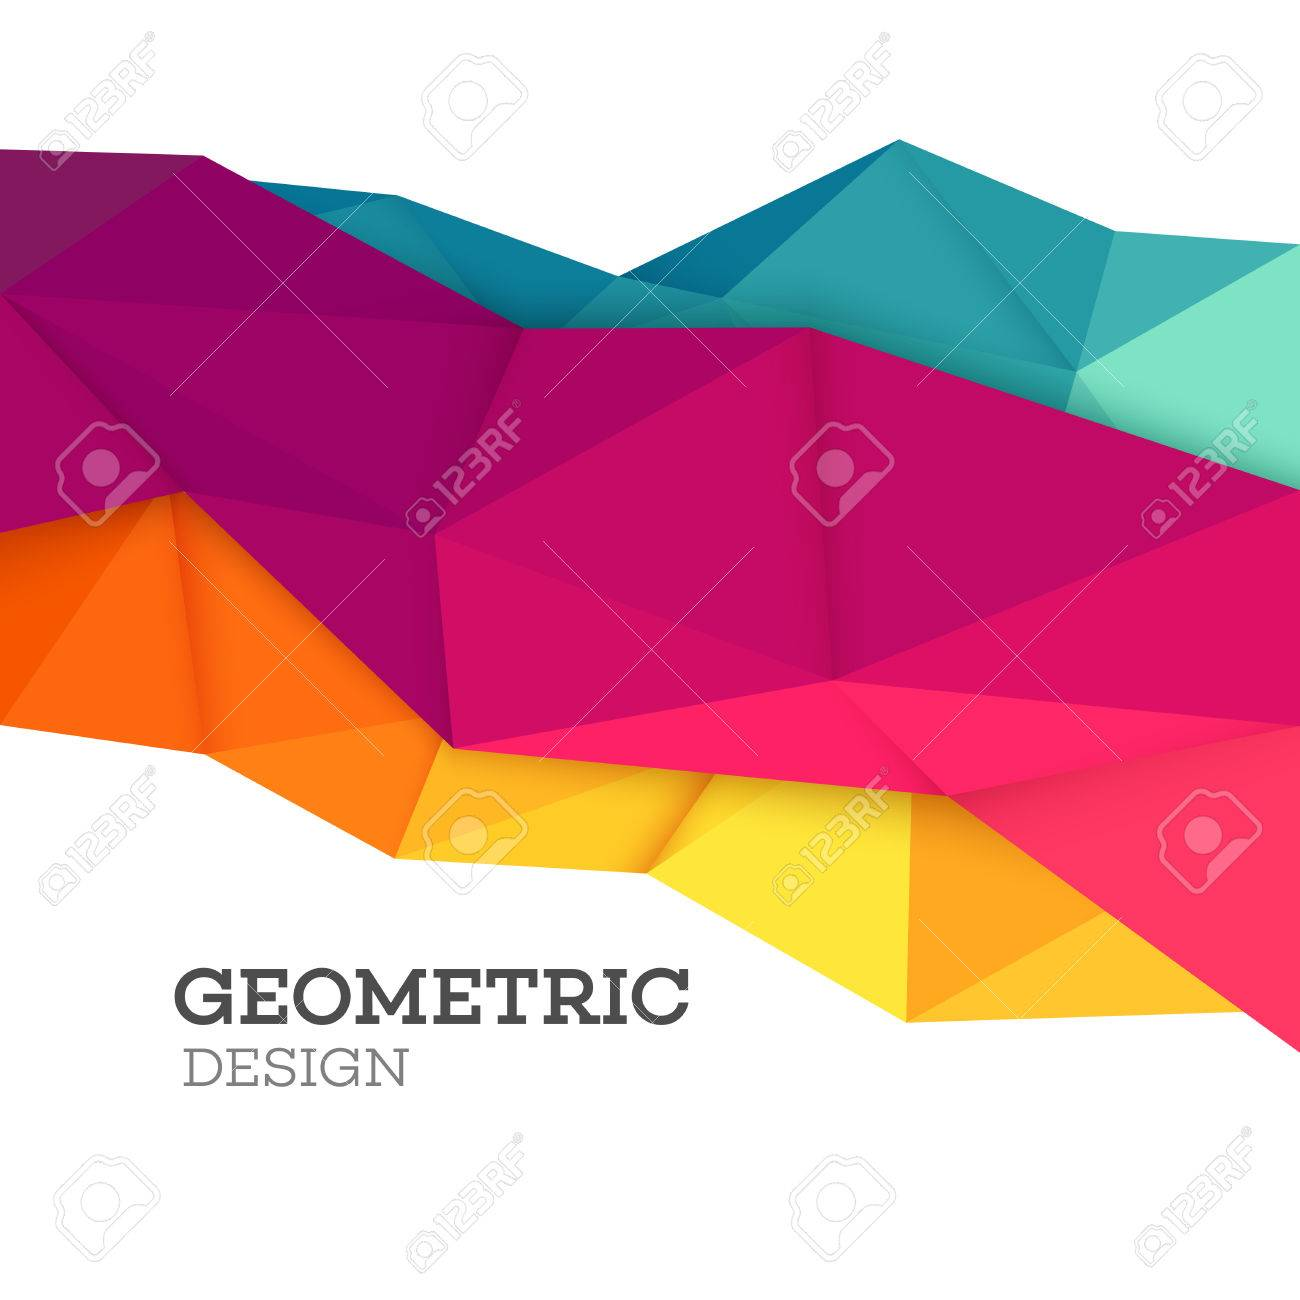 Abstract geometric triangle low poly set. Vector illustration EPS10 - 53188308